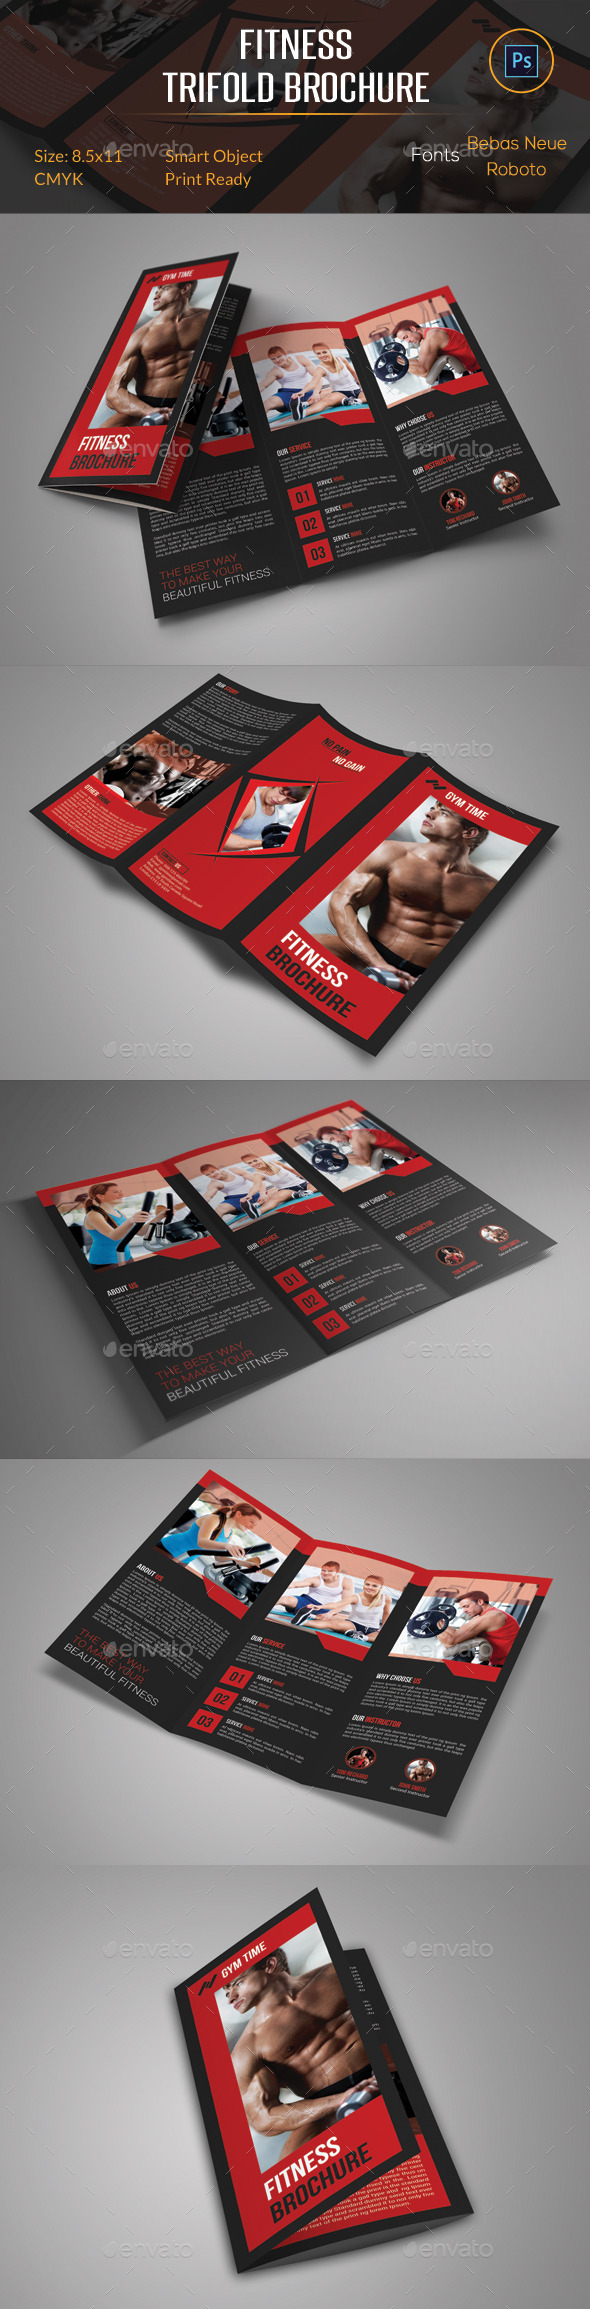 GraphicRiver Fitness Trifold Brochure 11105668